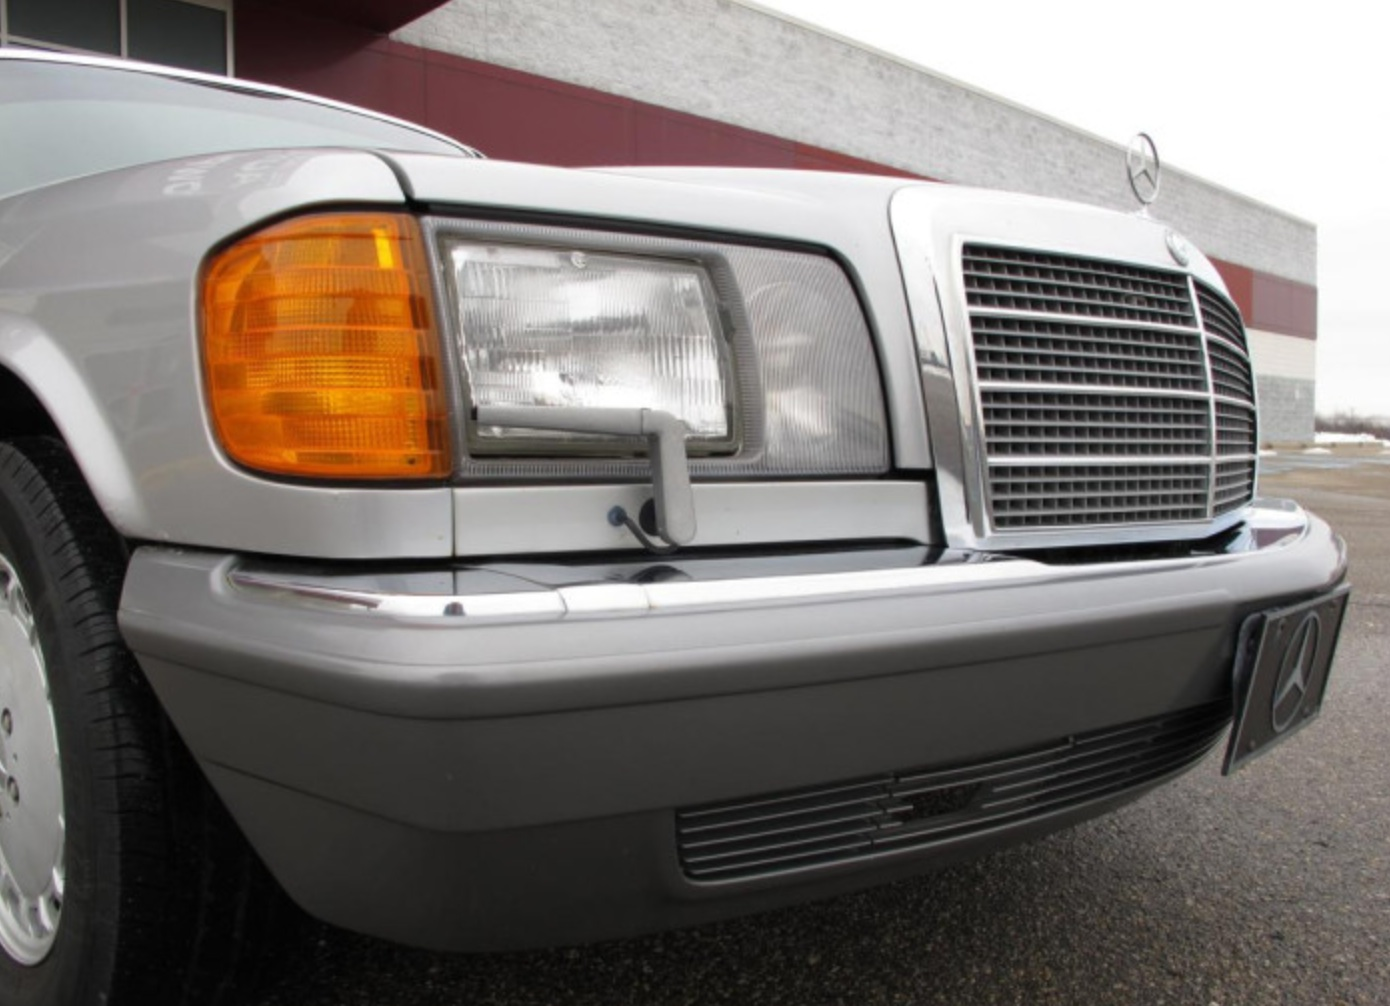 S Class Archives Page 15 Of 19 German Cars For Sale Blog Mercedes Cl W126 300sd 1983 Fuse Box Diagram 1989 Benz 300se